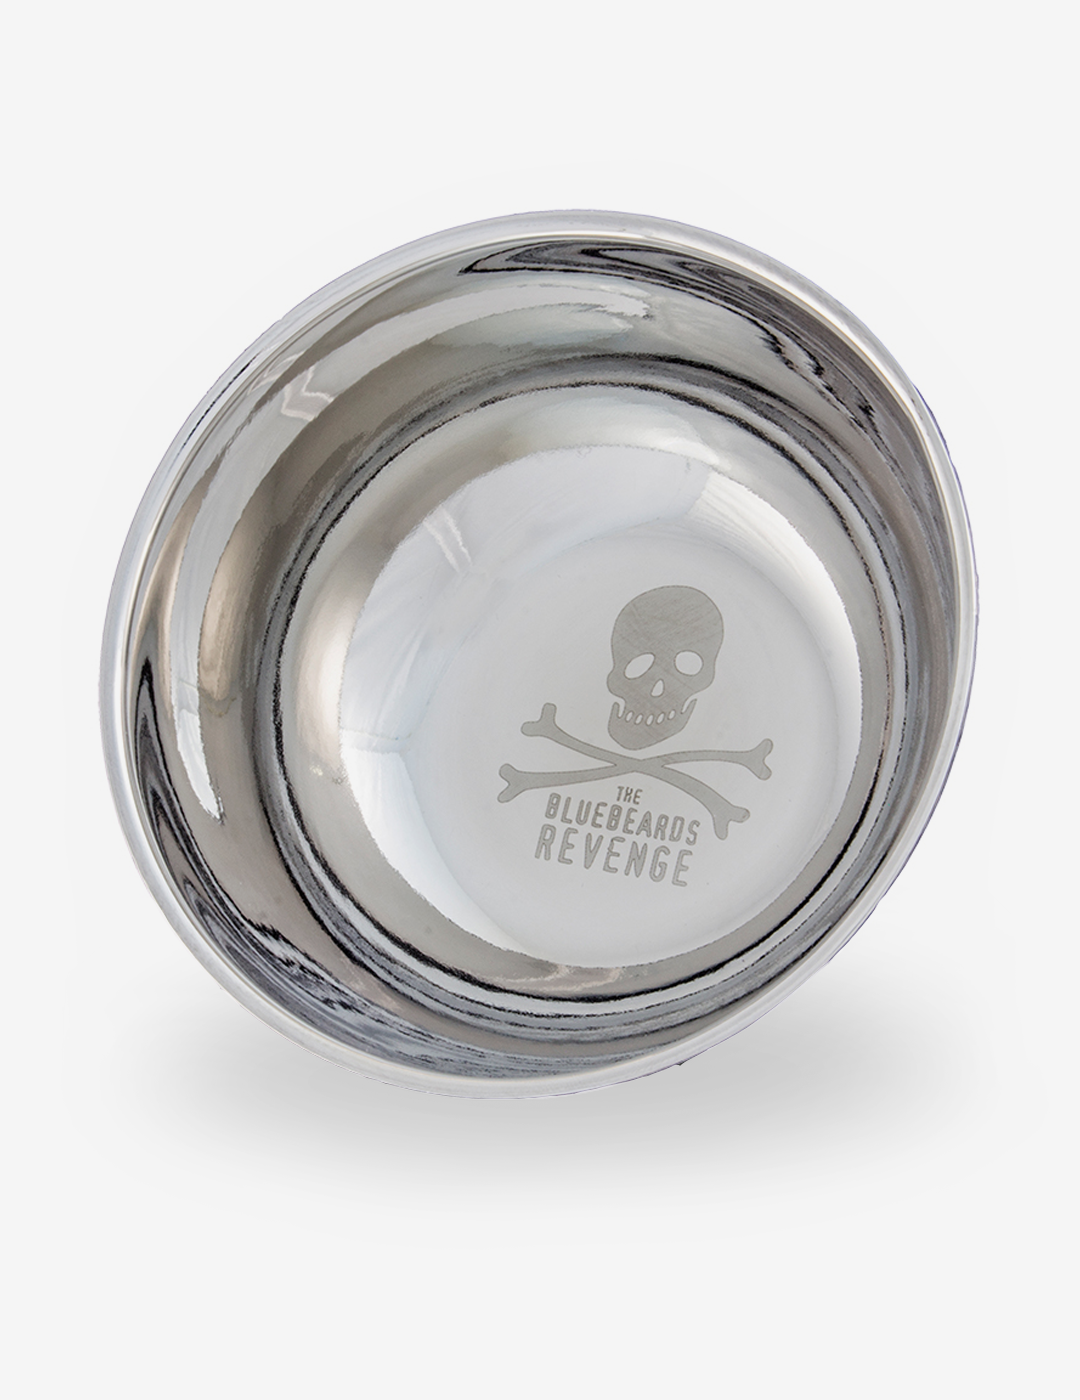 The Bluebeards Revenge Stainless Steel Shaving Bowl